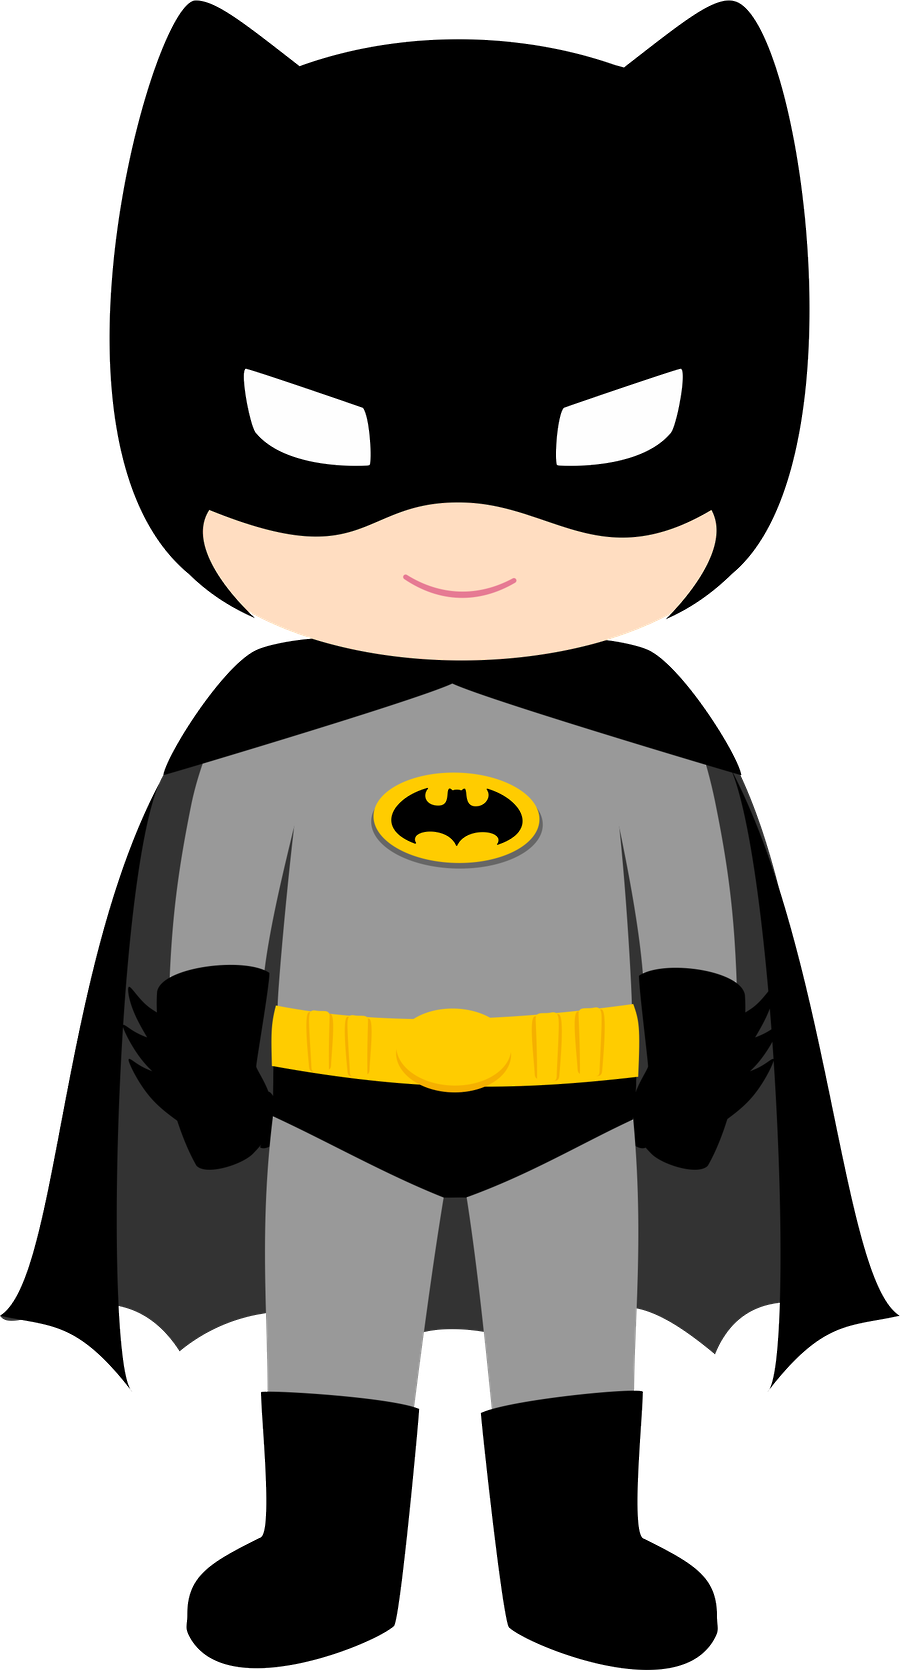 Joker clipart for kid #9